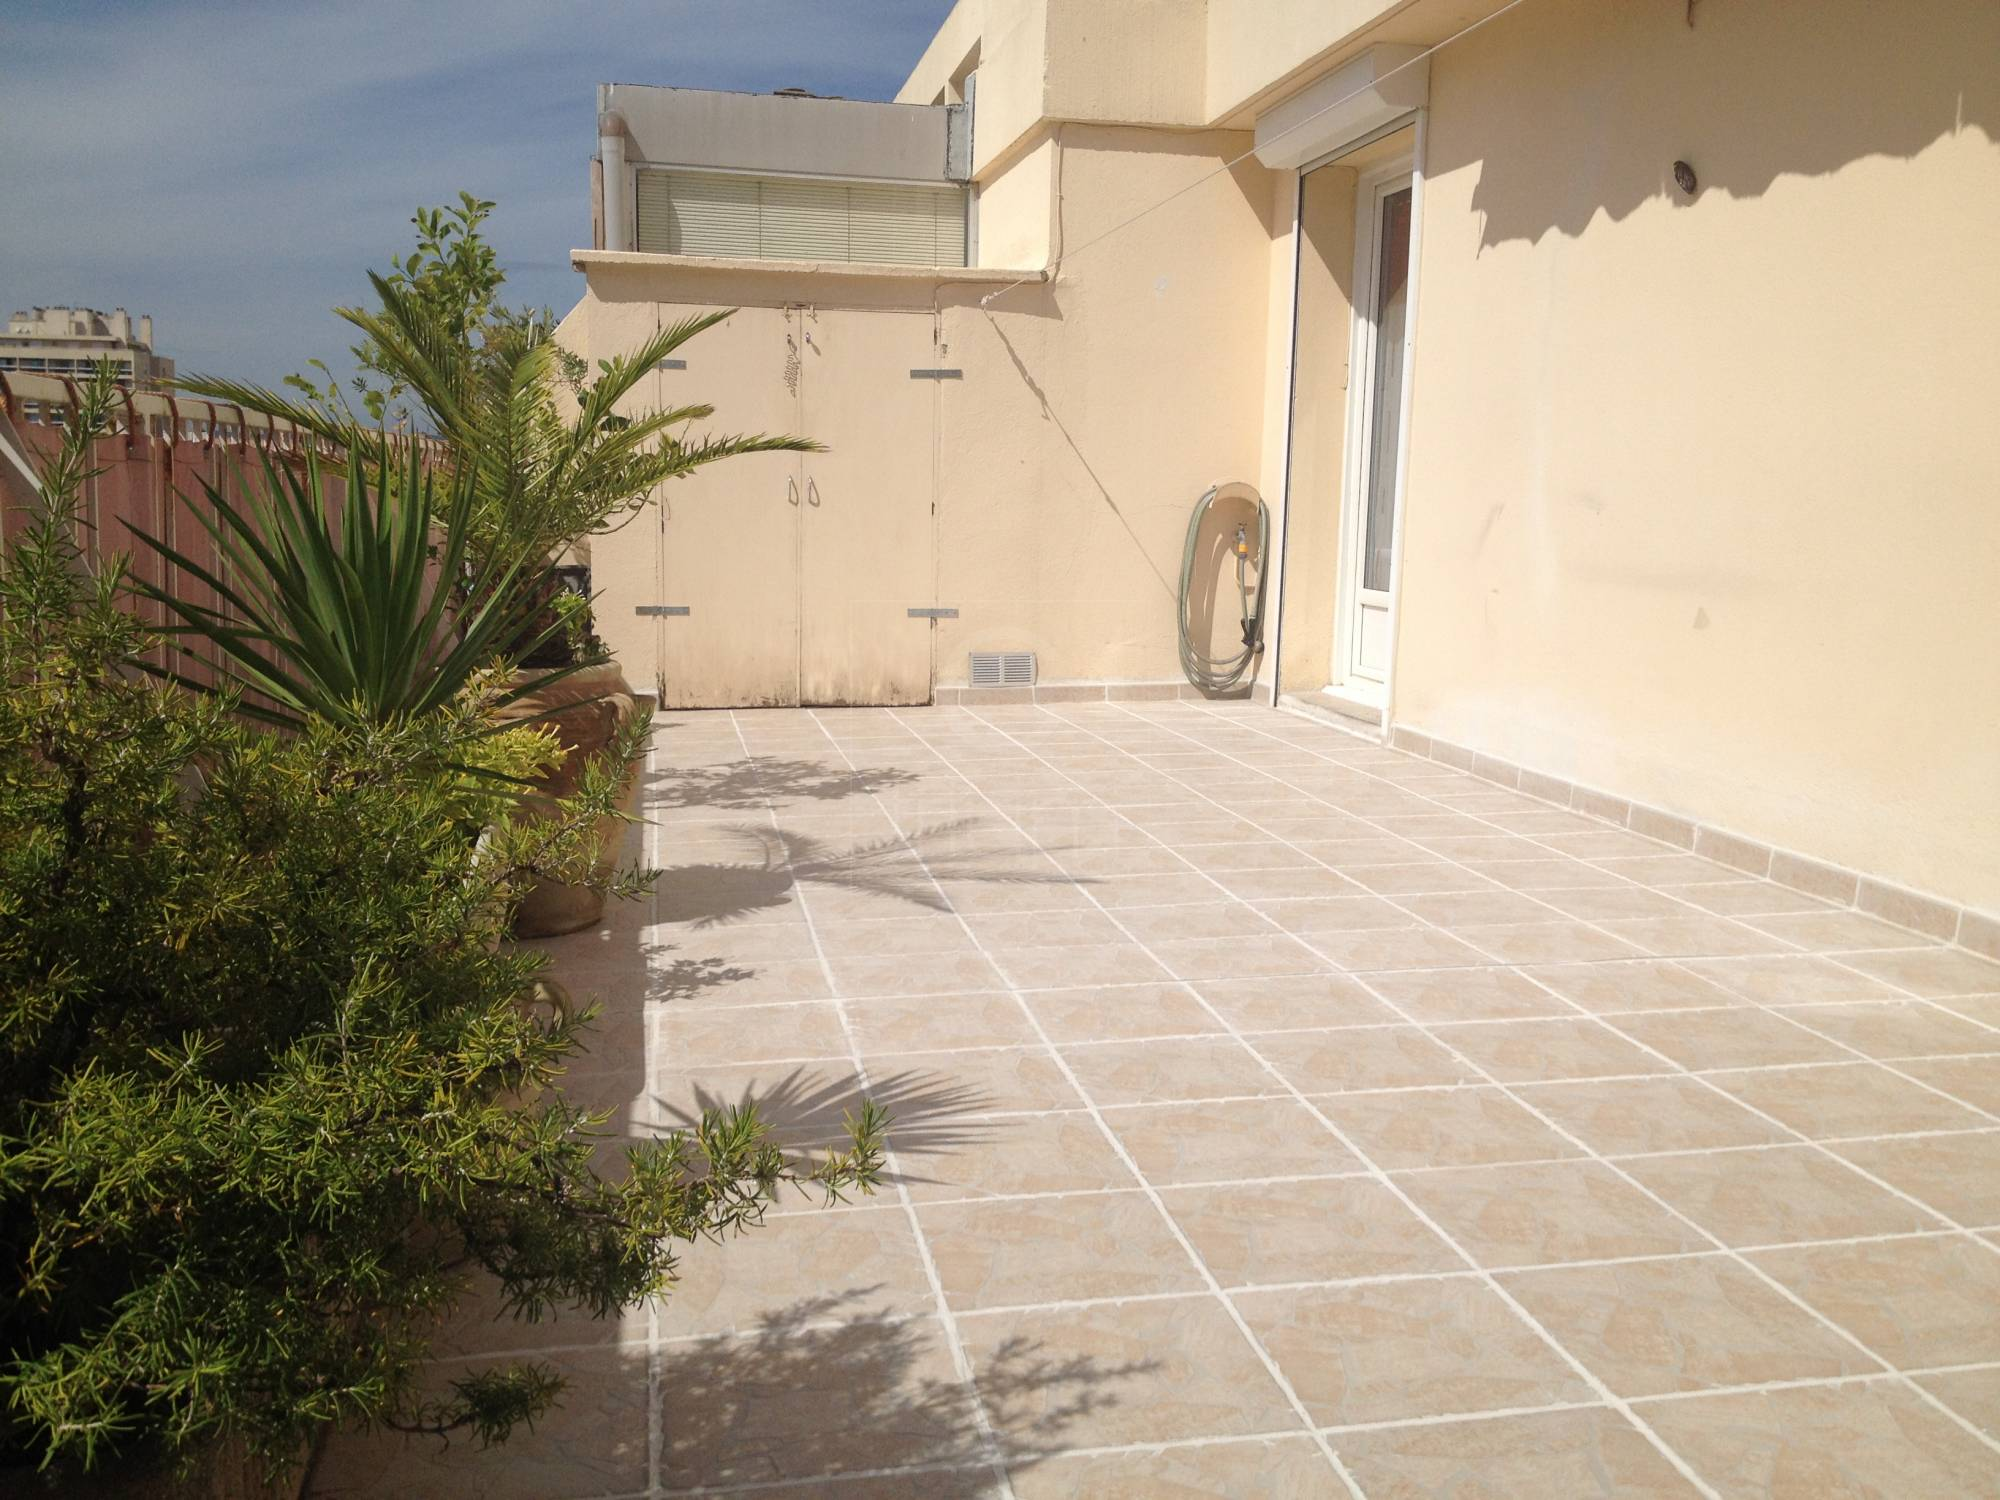 Vente appartement t3 f3 marseille 7eme endoume dernier for T3 marseille vente